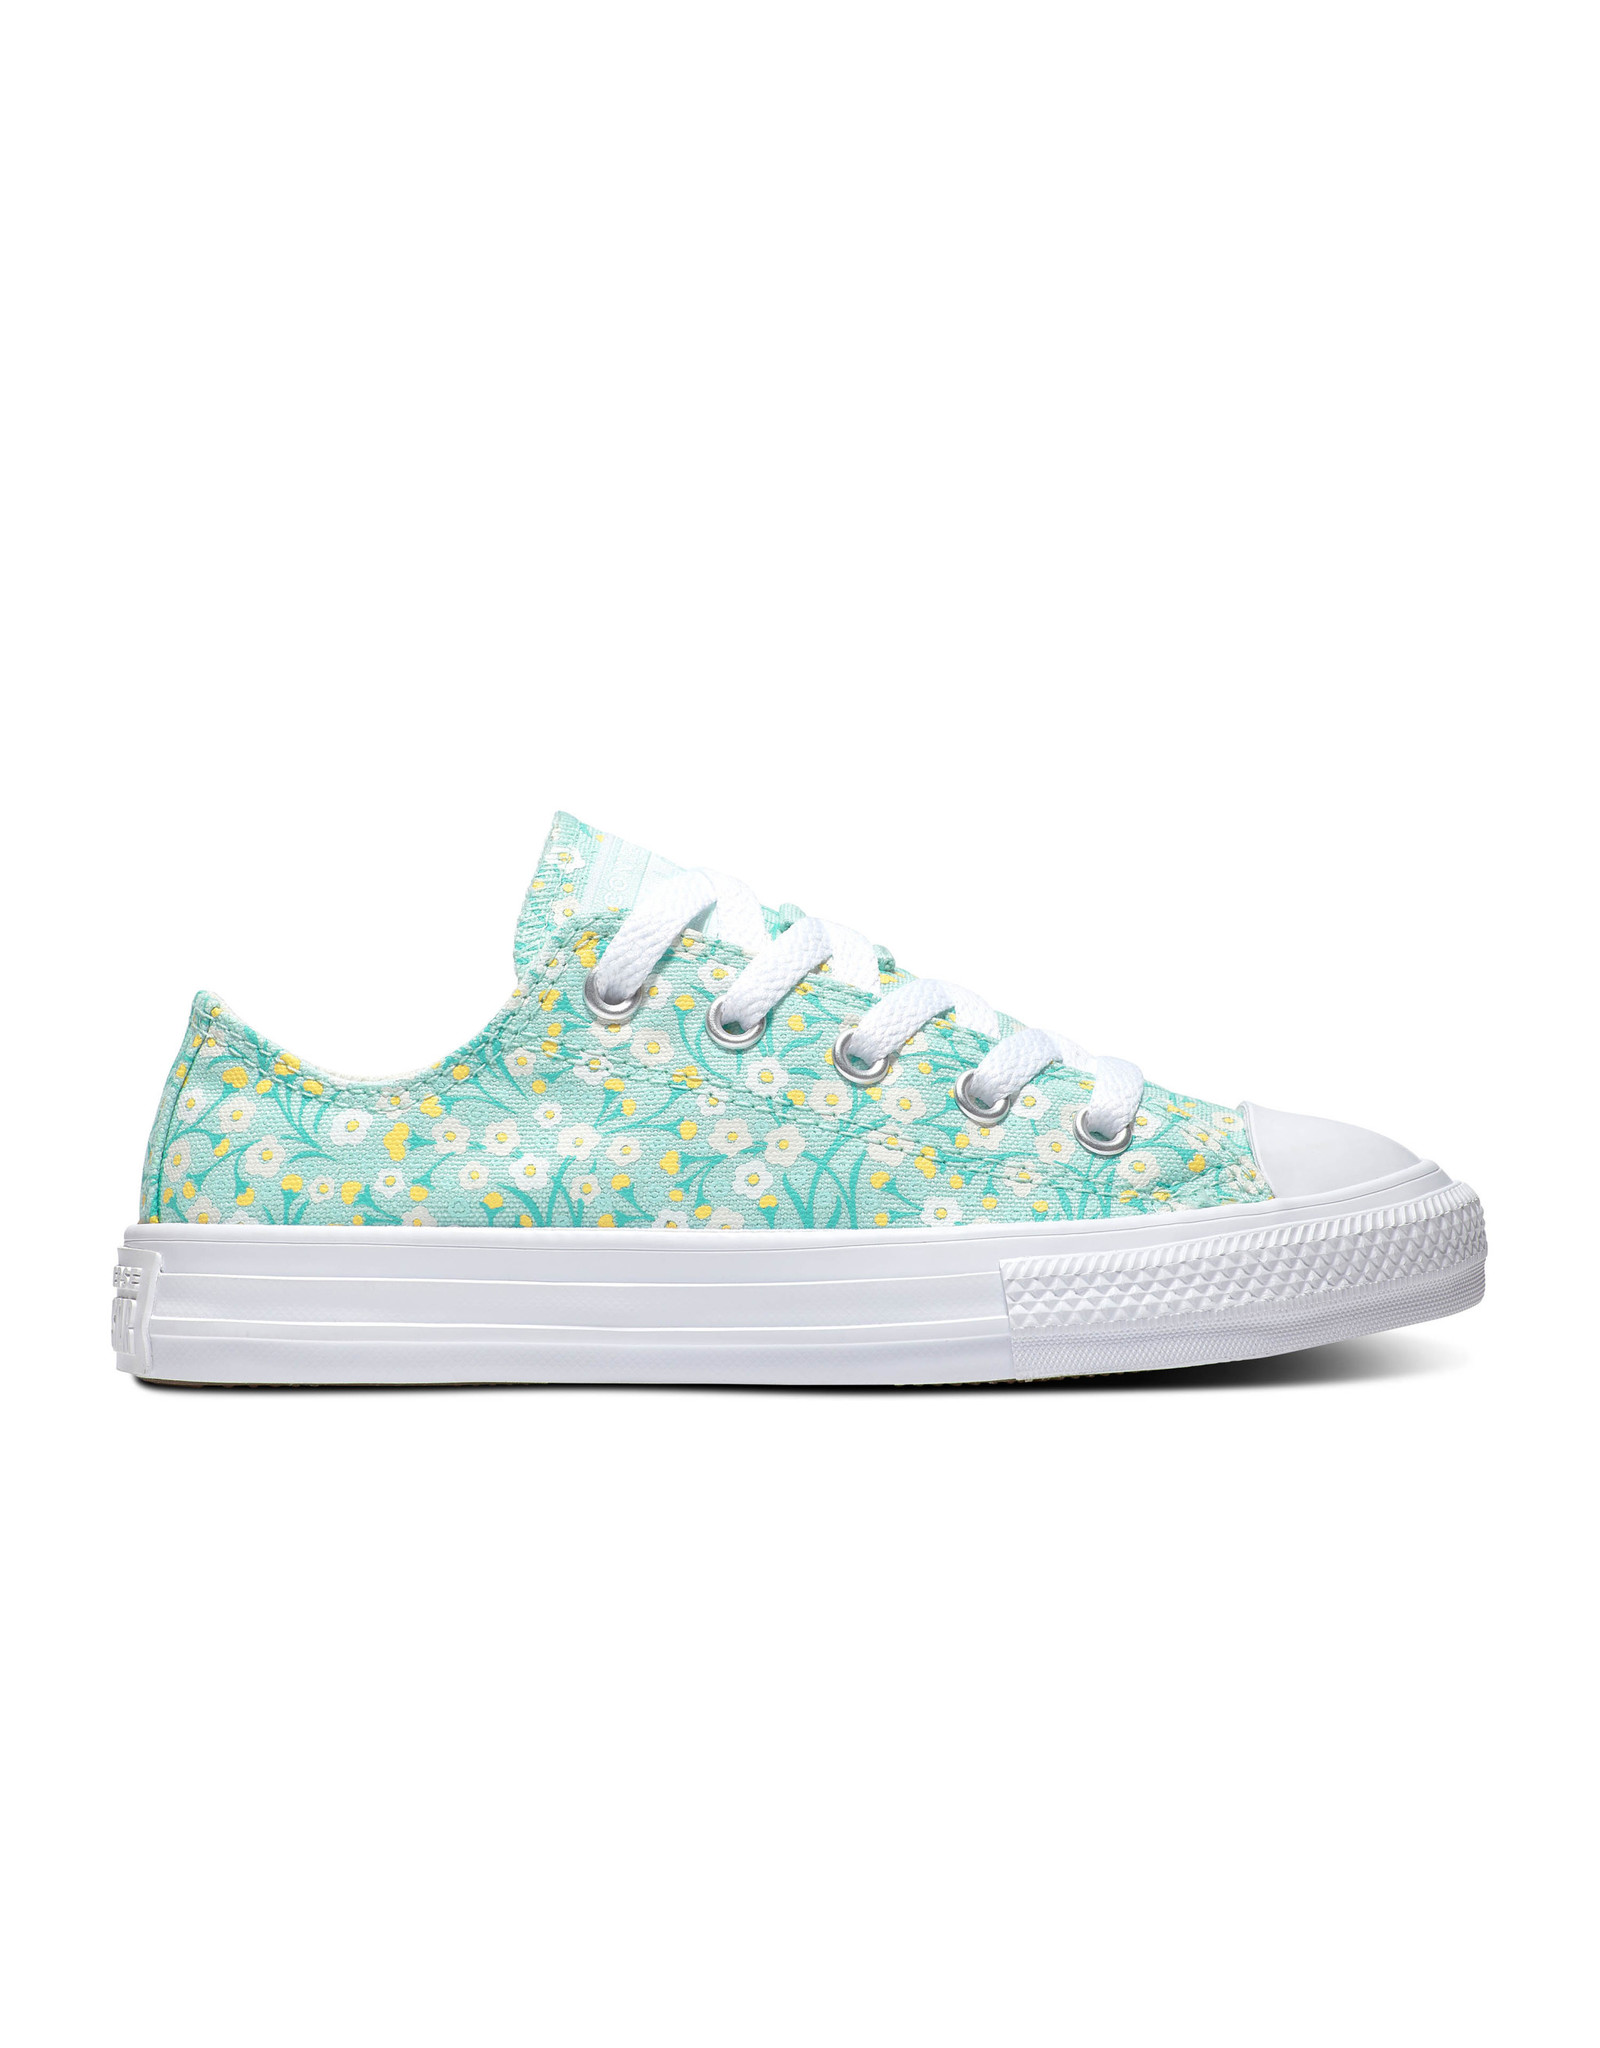 CONVERSE CHUCK TAYLOR ALL STAR  OX OCEAN MINT/TOPAZ GOLD/WHITE CAFLO-666880C